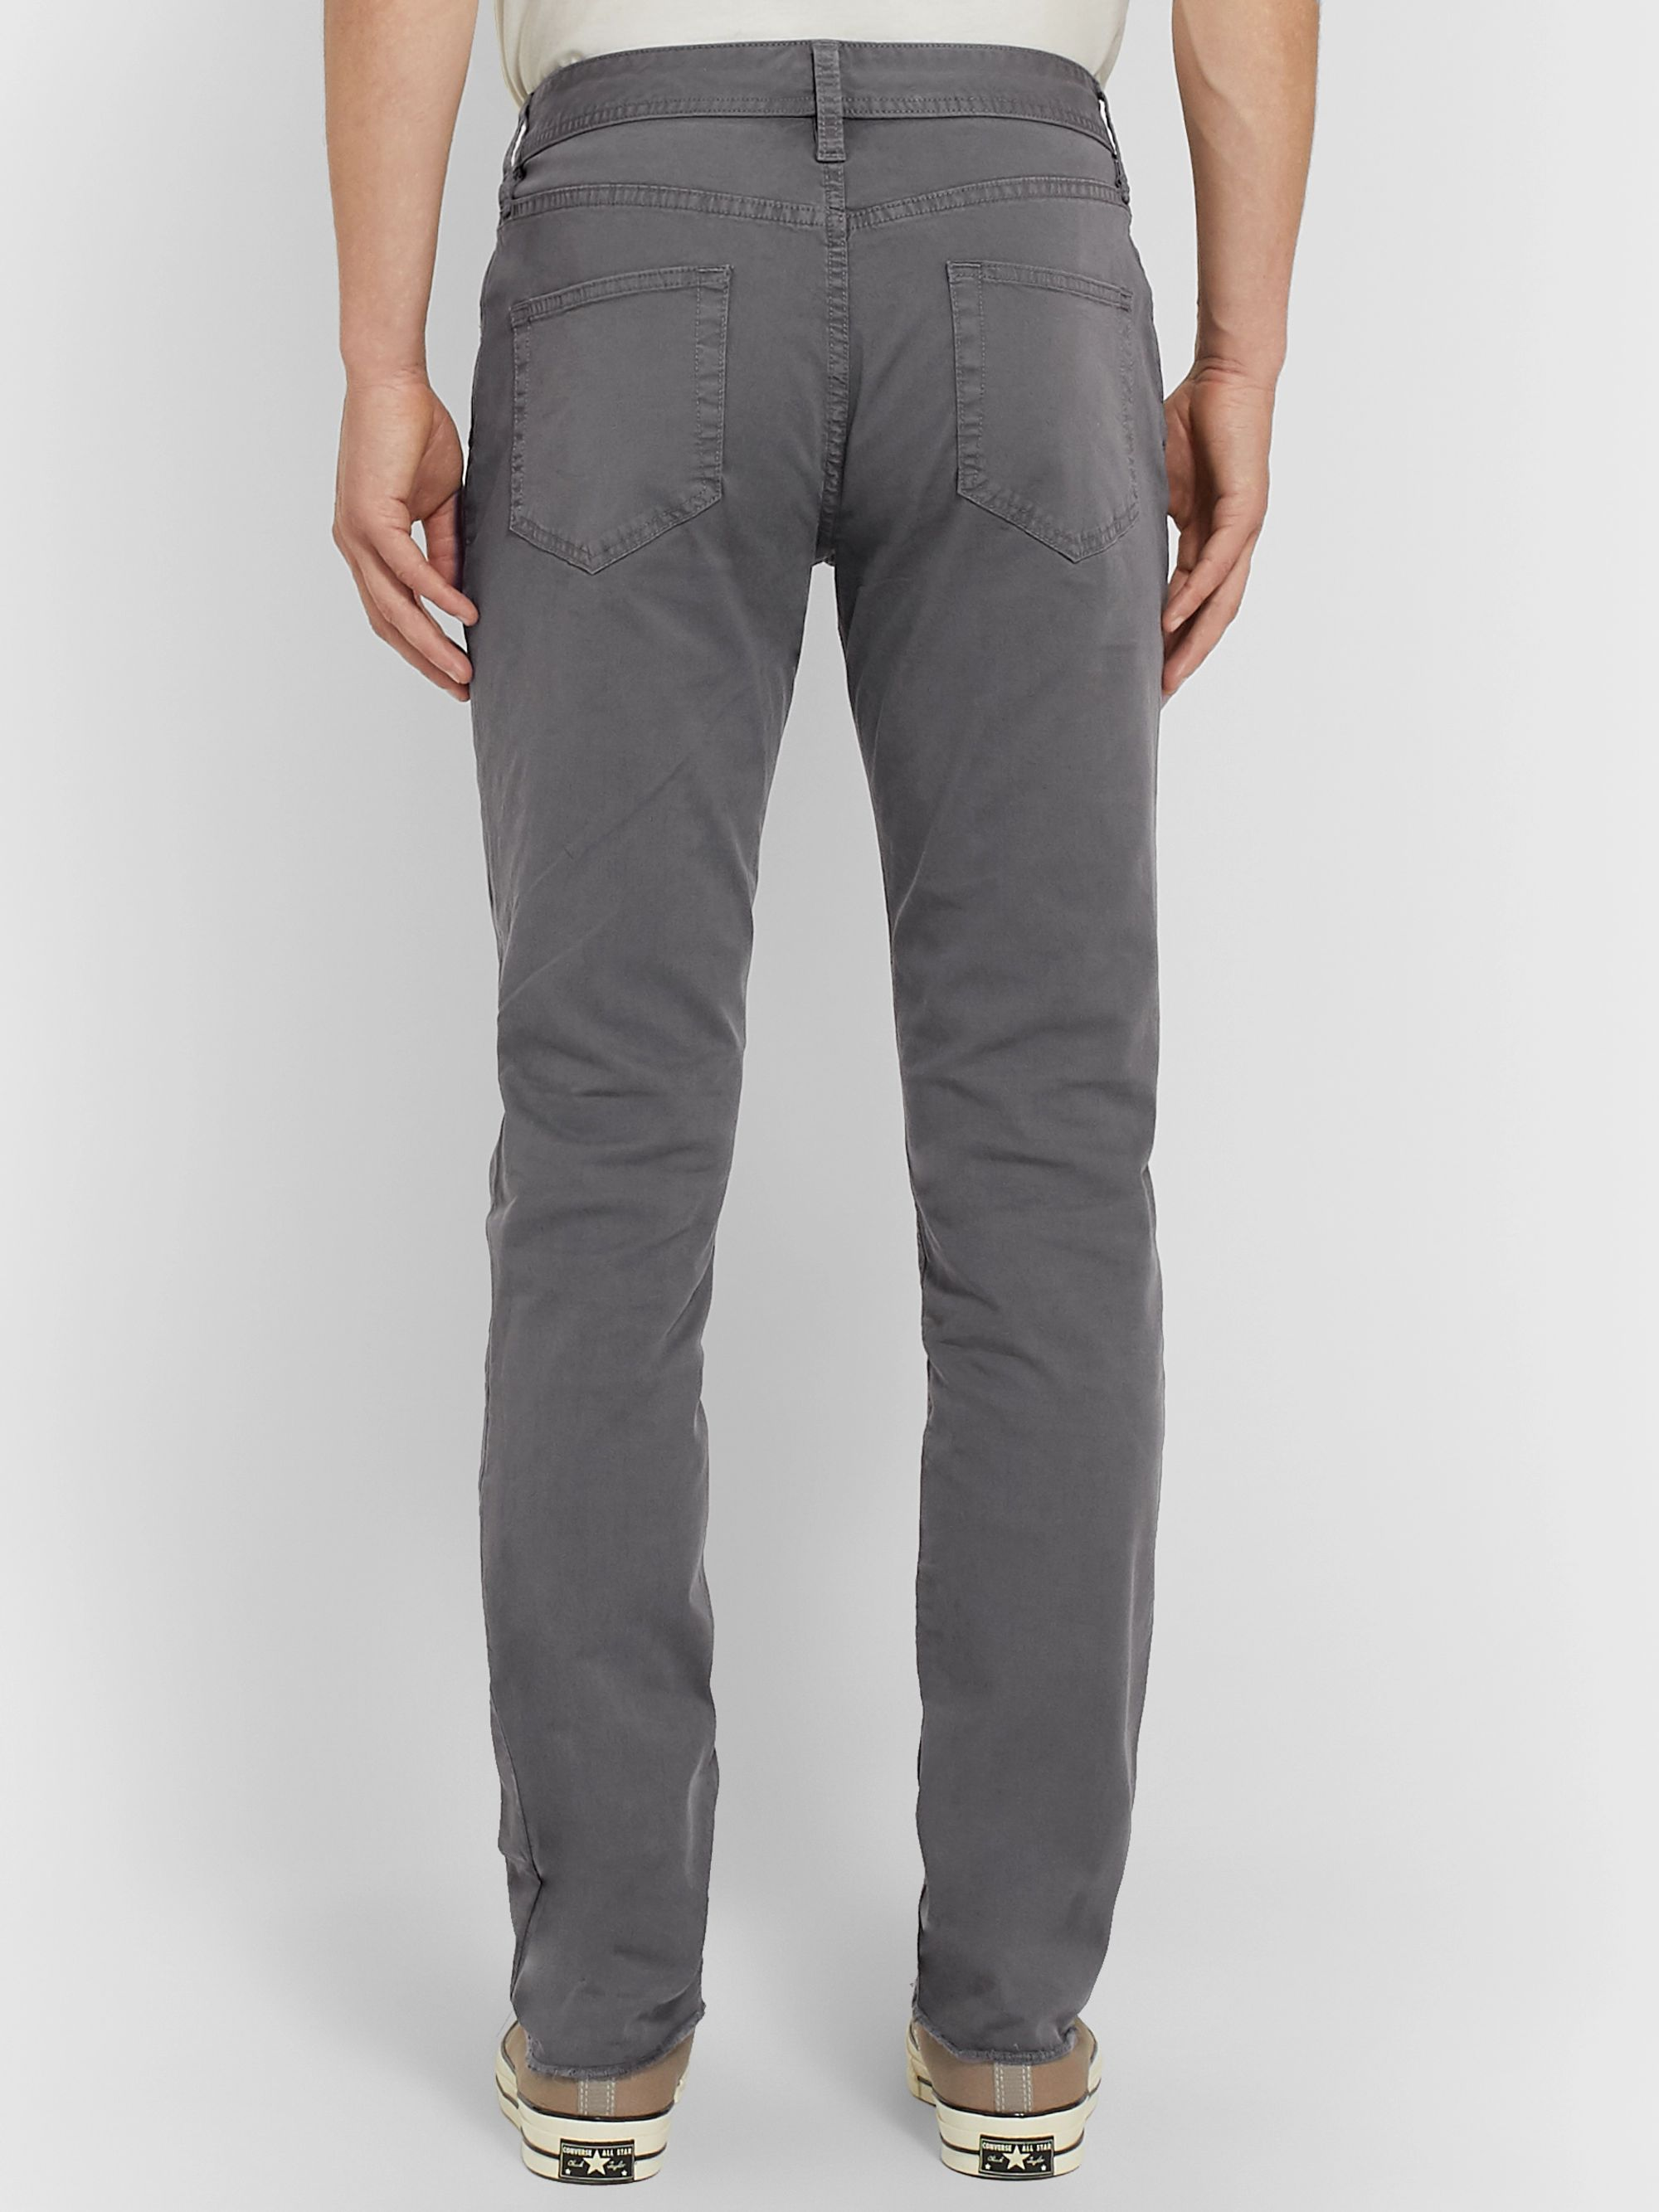 James Perse Grey Slim-Fit Cotton-Blend Twill Trousers